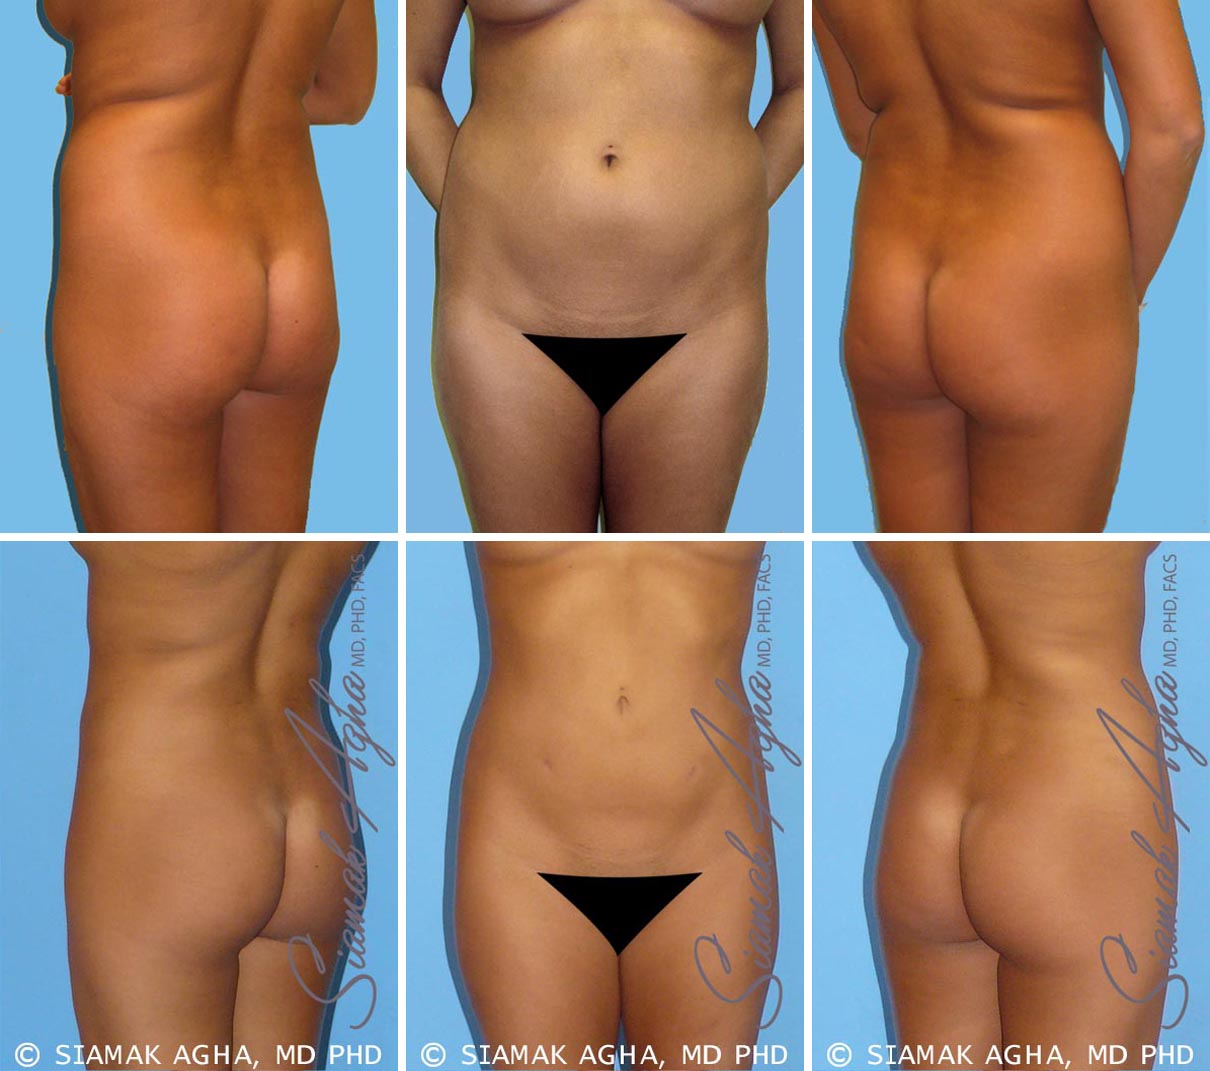 Liposuction Before and After Set 3